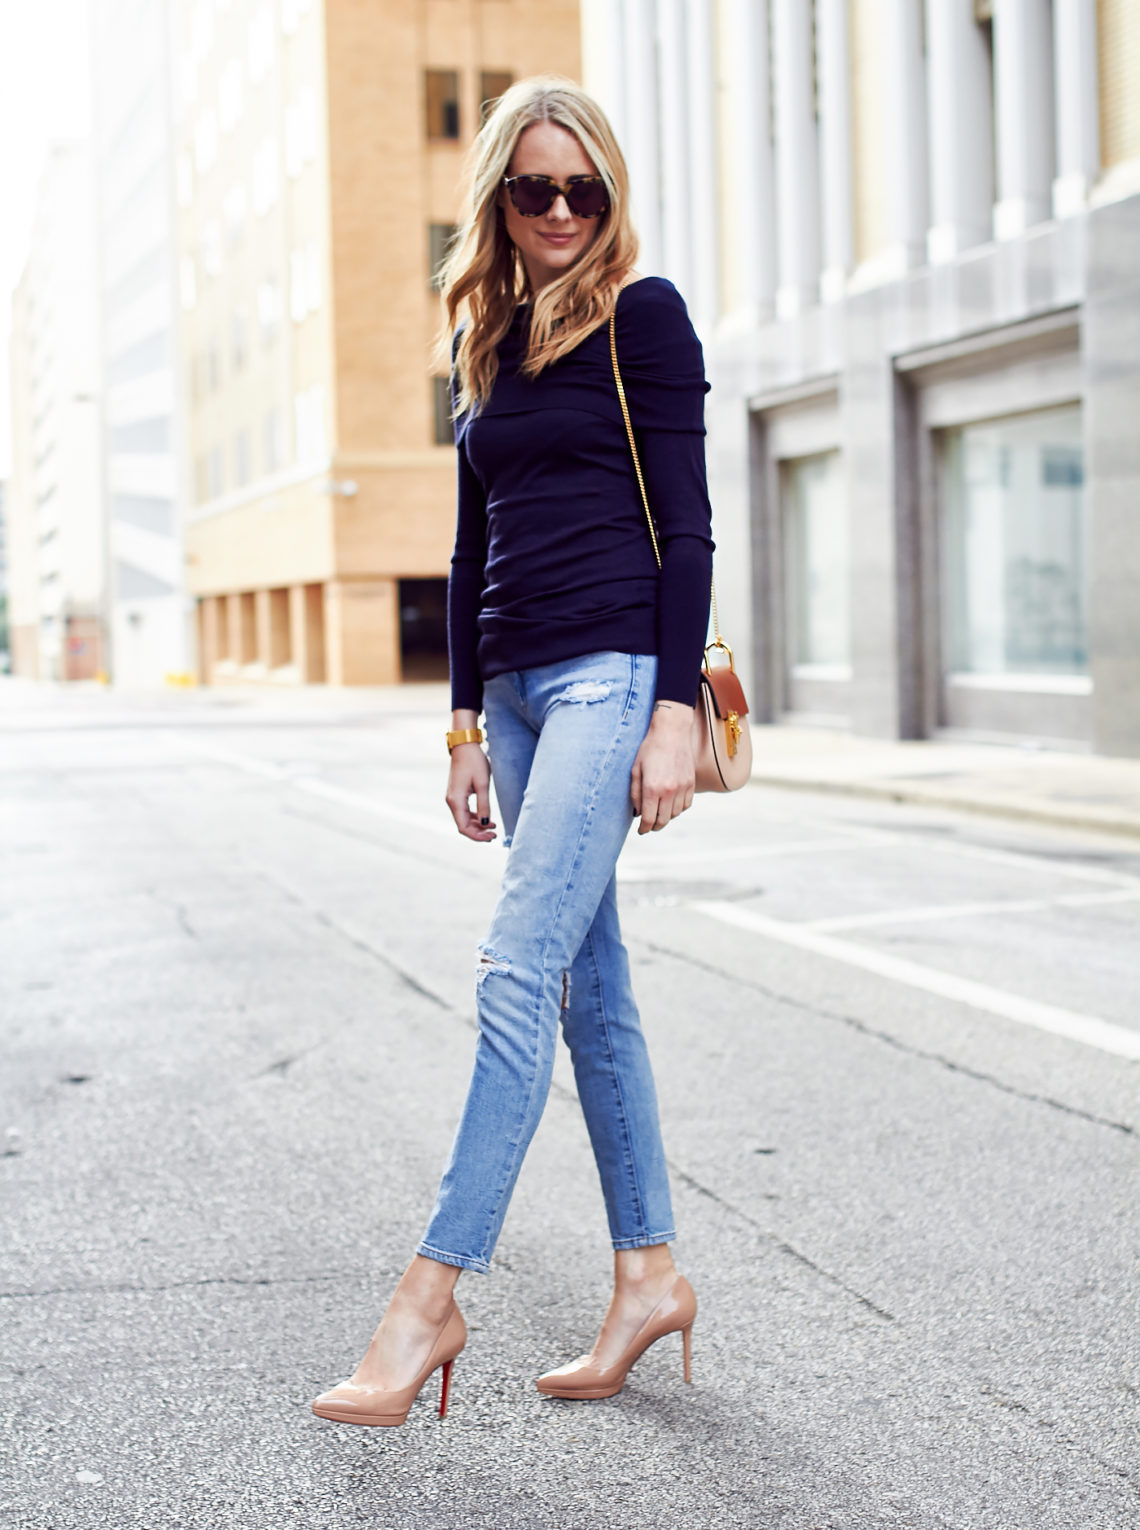 blanknyc denim jeans, christian louboutin pigalle nude pumps, autumn cashmere navy off the shoulder sweater, chloe drew handbag, fall outfit